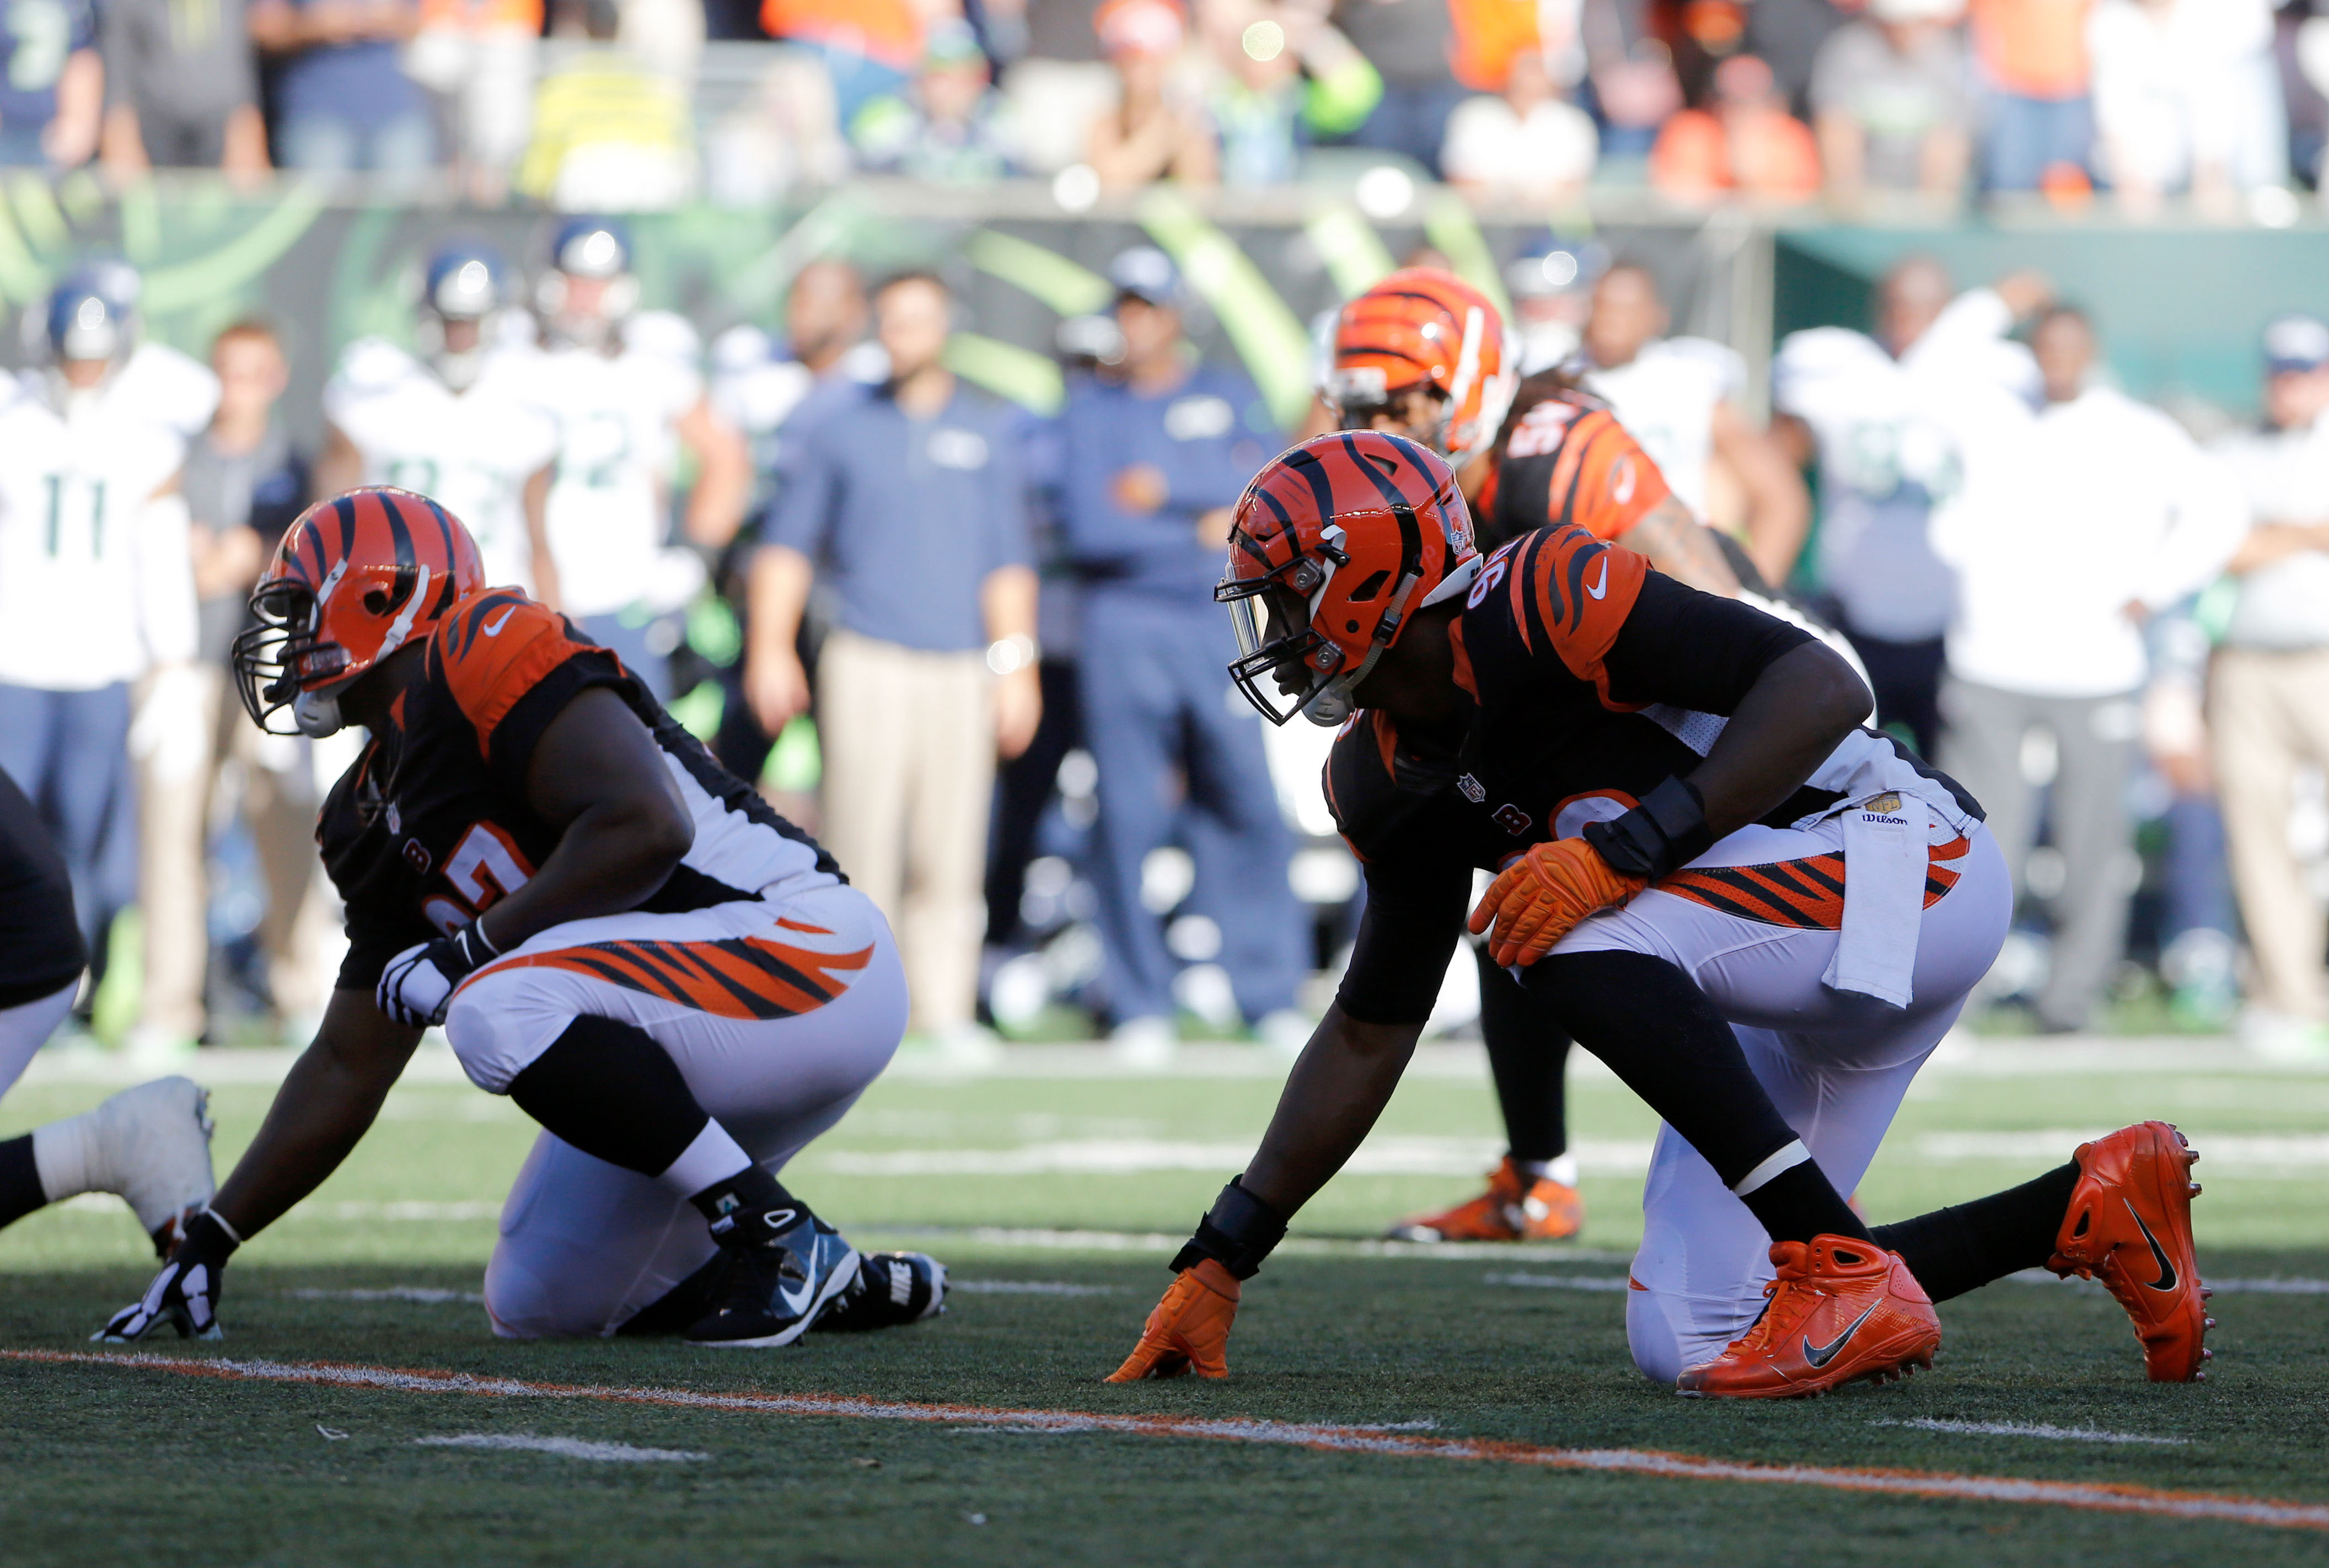 Oct 11, 2015; Cincinnati, OH, USA; Cincinnati Bengals defensive end Carlos Dunlap (96) and linebacker Vincent Rey (57) line up during the game against the Seattle Seahawks at Paul Brown Stadium. Cincinnati defeated Seattle 27-24. Mandatory Credit: Mark Zerof-USA TODAY Sports